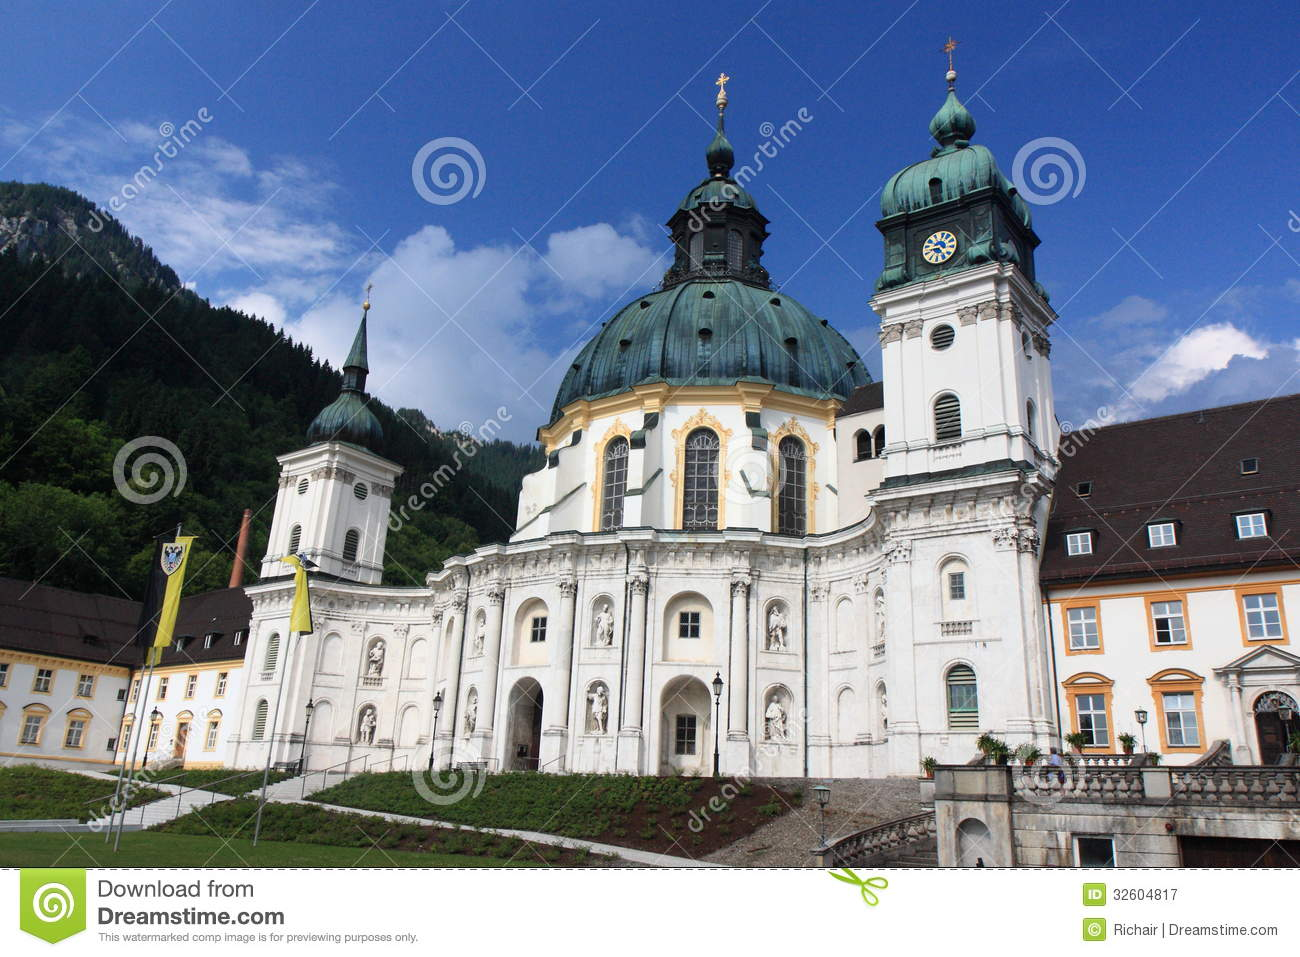 Ettal Germany  city pictures gallery : The Ettal monastery near Oberammergau in Bavaria, Germany, which also ...